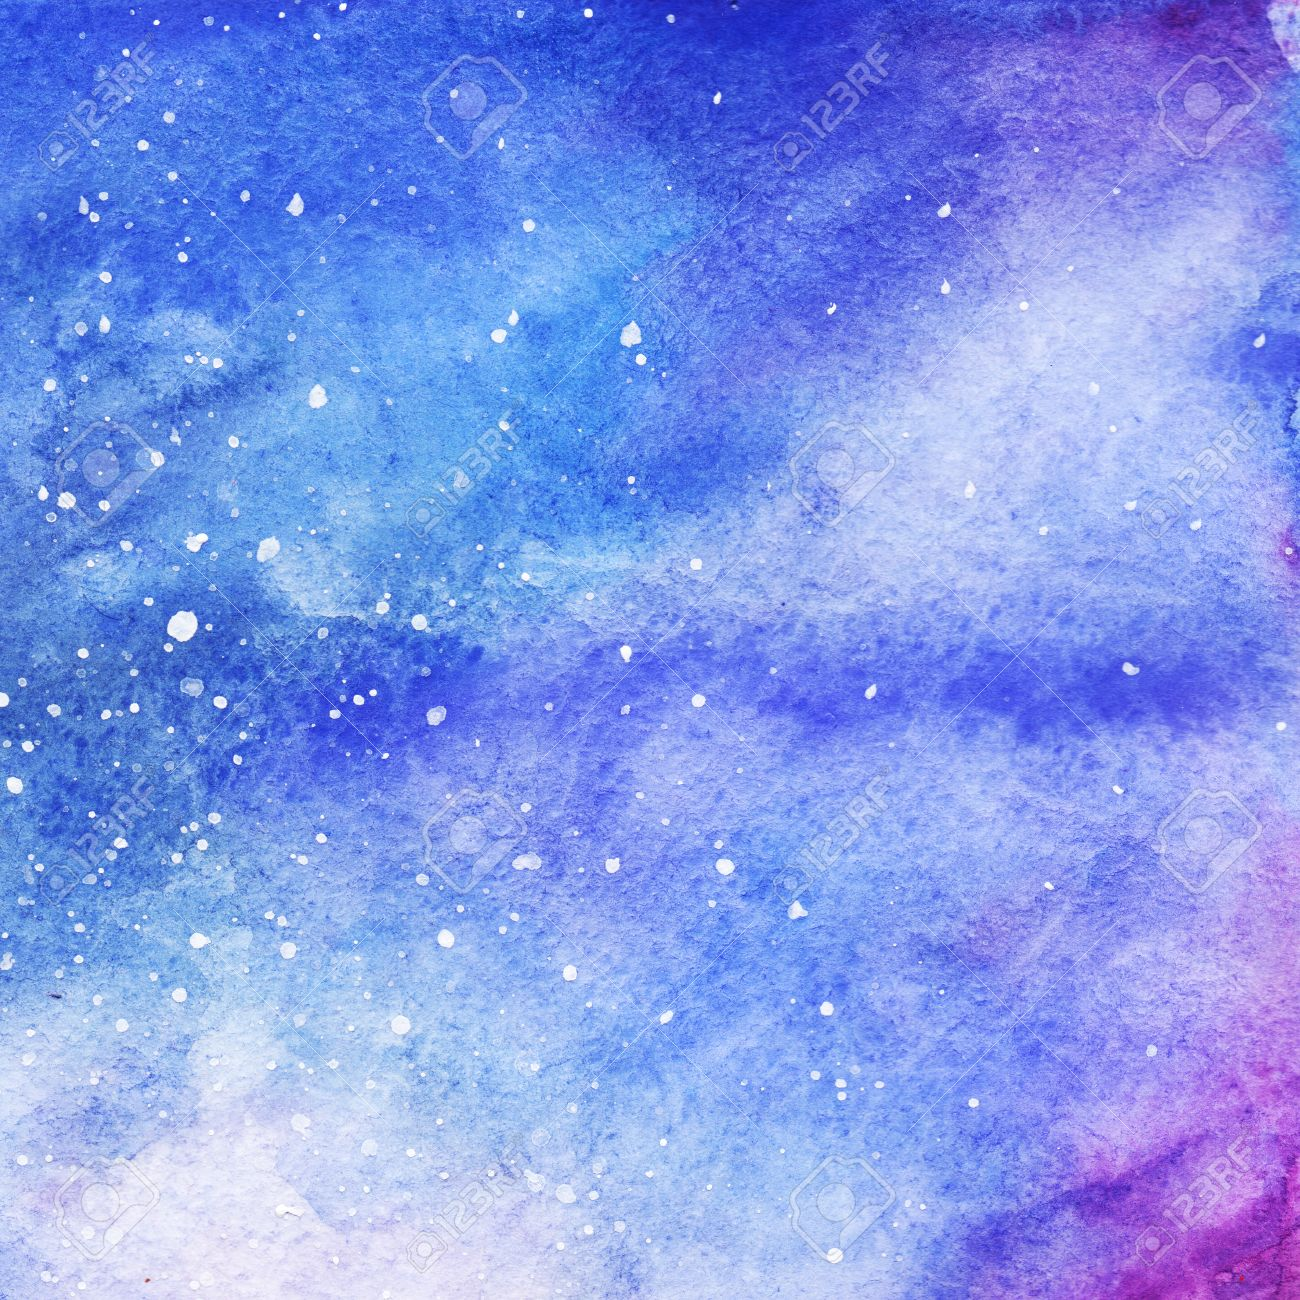 background - 61157208-watercolor-colorful-starry-space-galaxy-nebula-background-